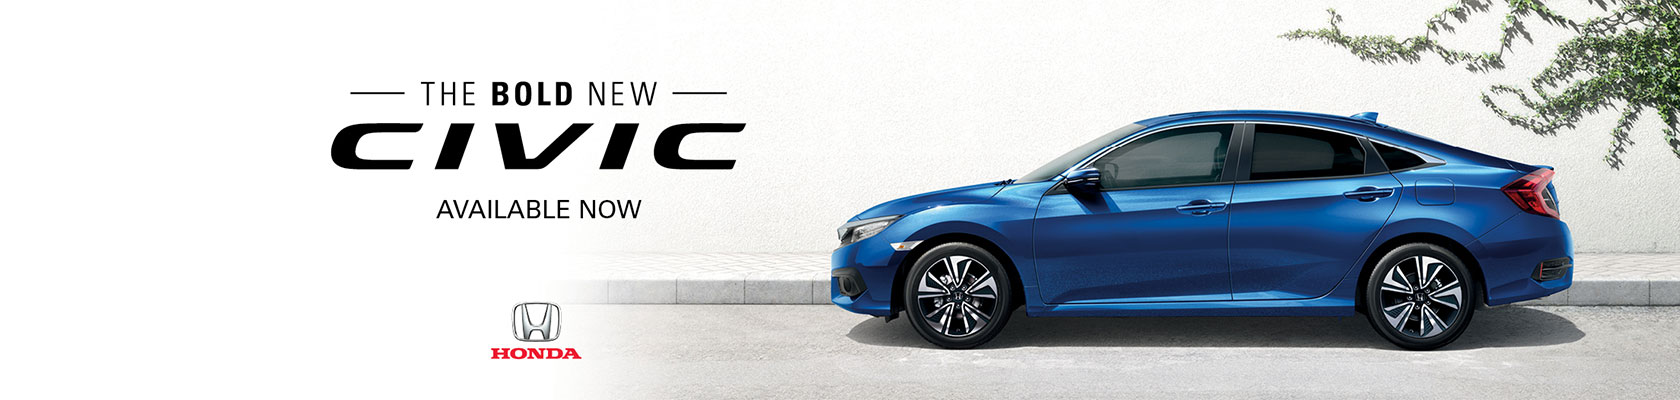 The Bold New Civic - Available Now